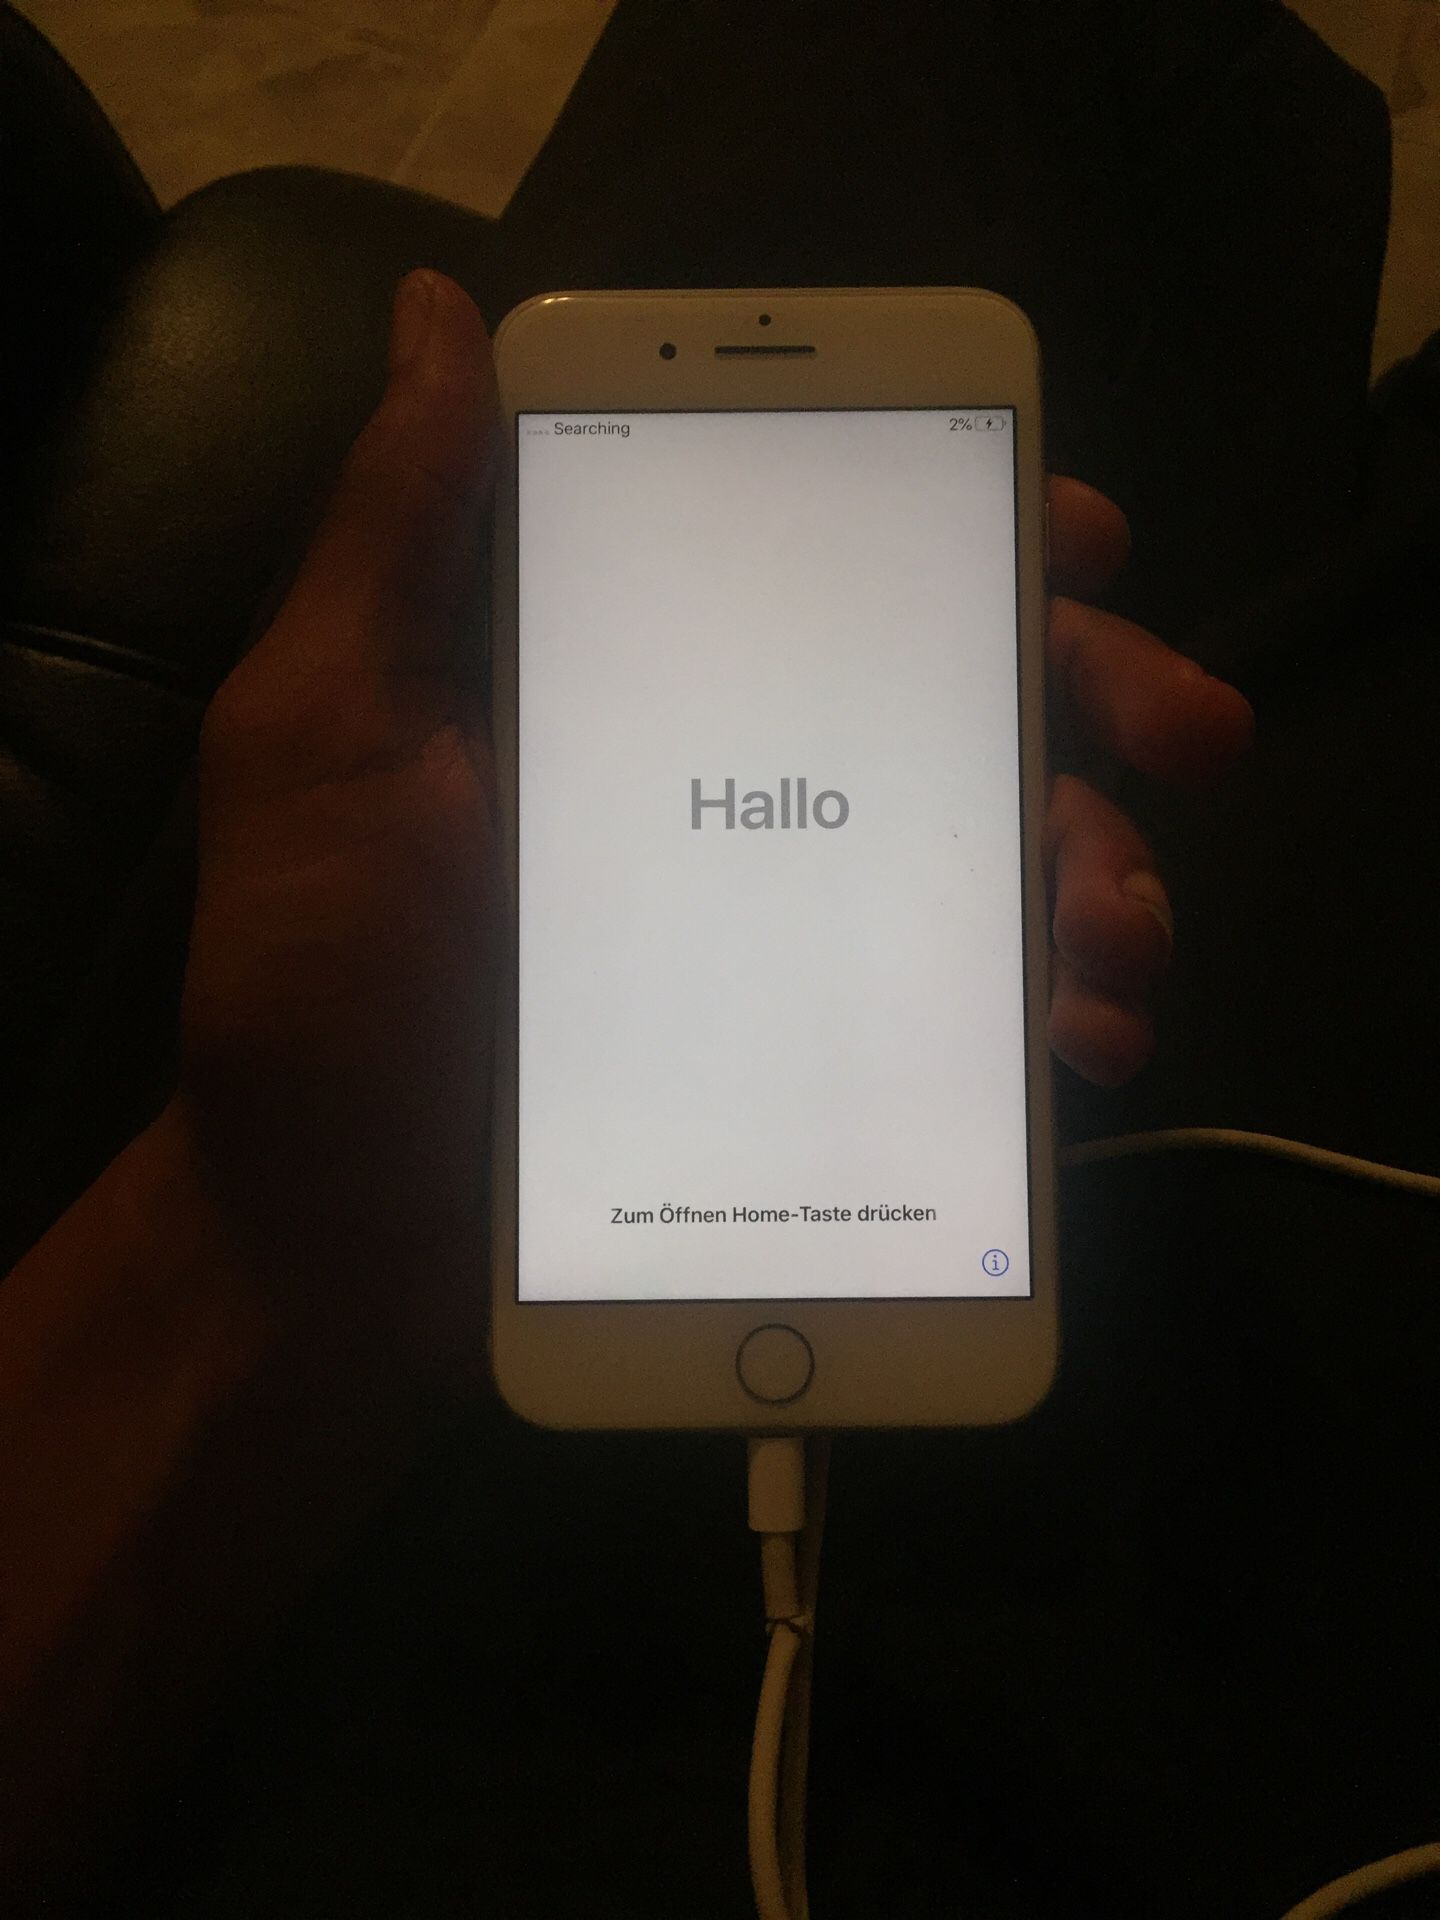 iPhone 8 Plus/ white version/256gs completely hard reseted